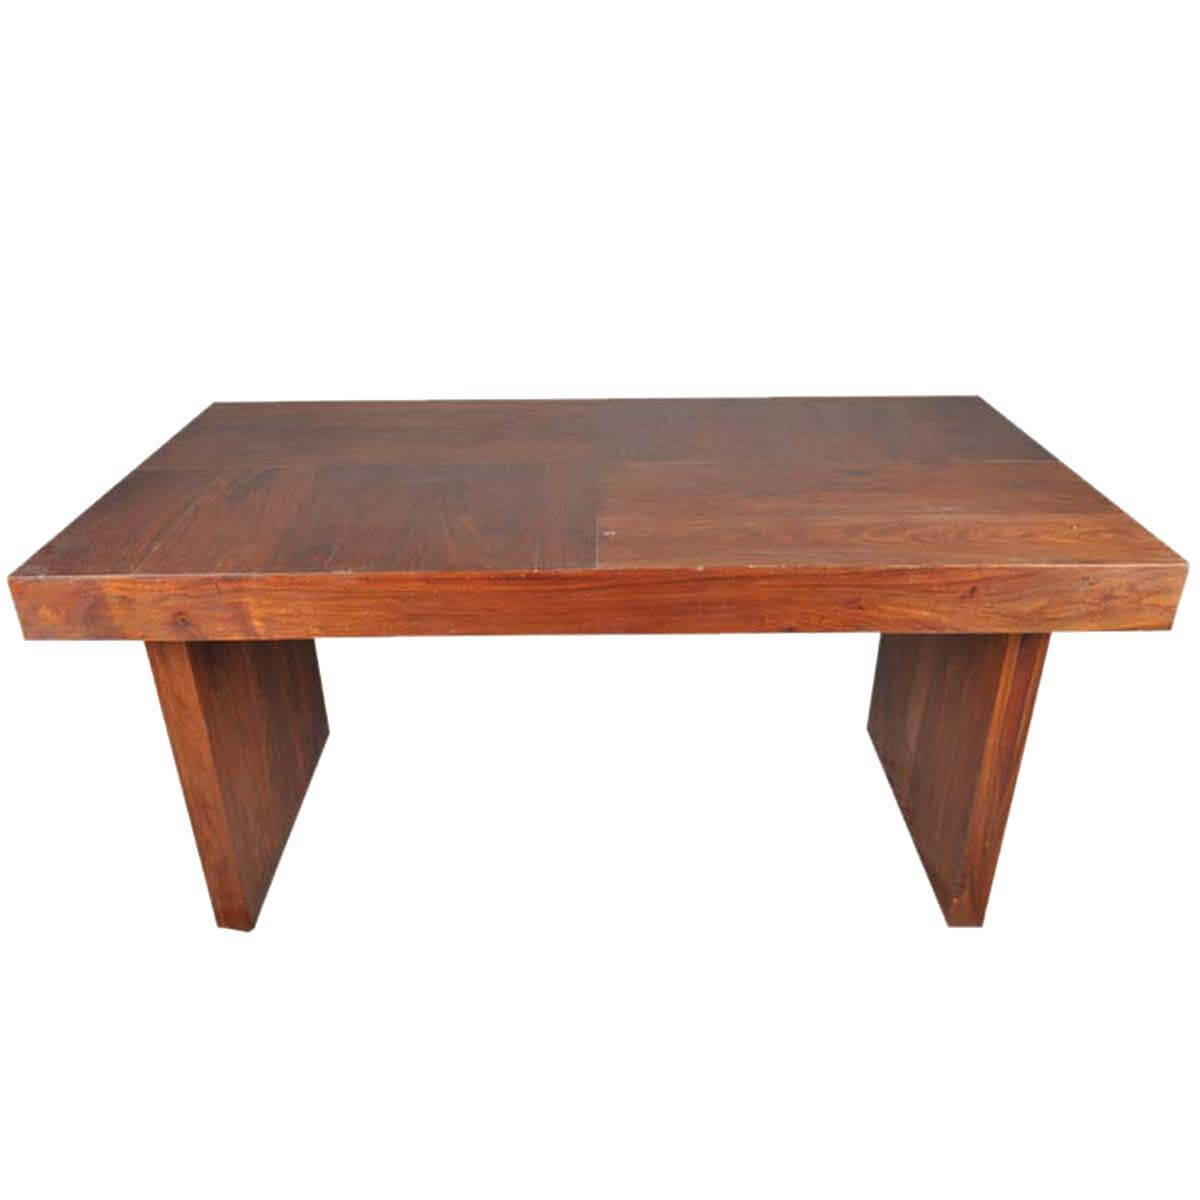 Wood Bench Dining Table: Sierra Contemporary Mango Wood Bench Dining Table